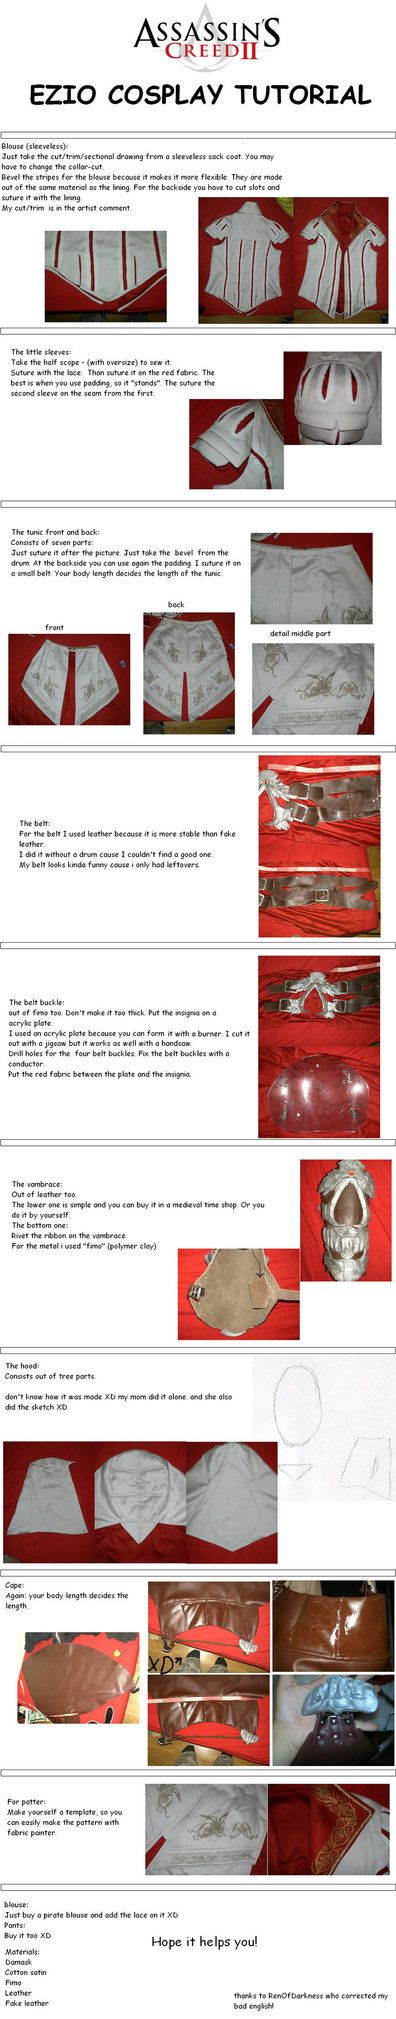 Ezio cosplay instructions. I'll save this for later.